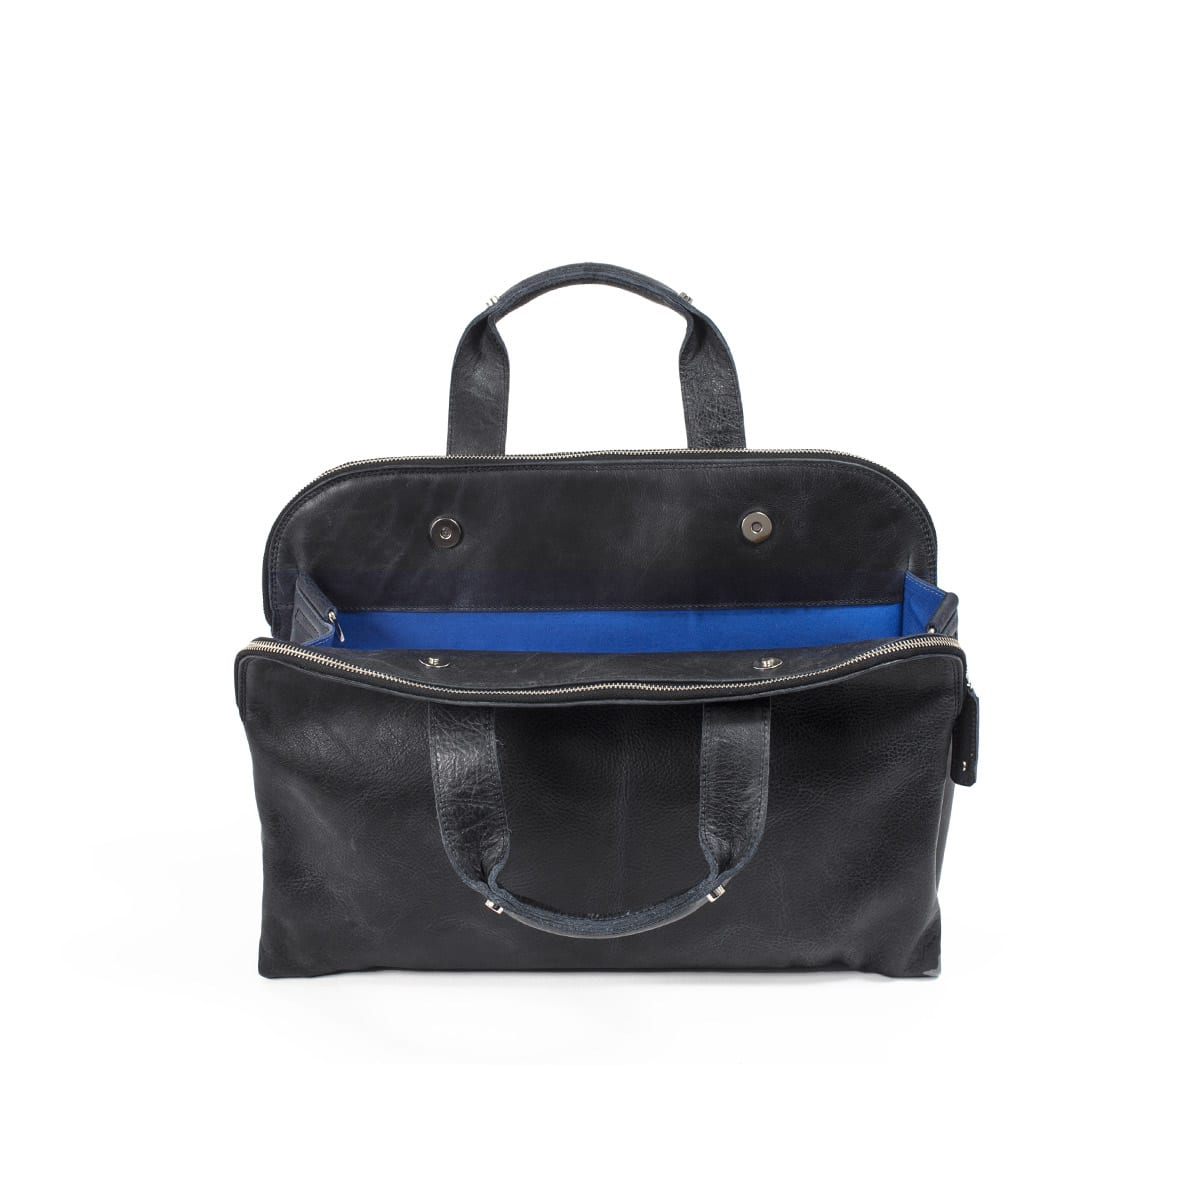 dbc415d09a0 LUMI James Business Bag, in black, is created using vegetable tanned, pull-